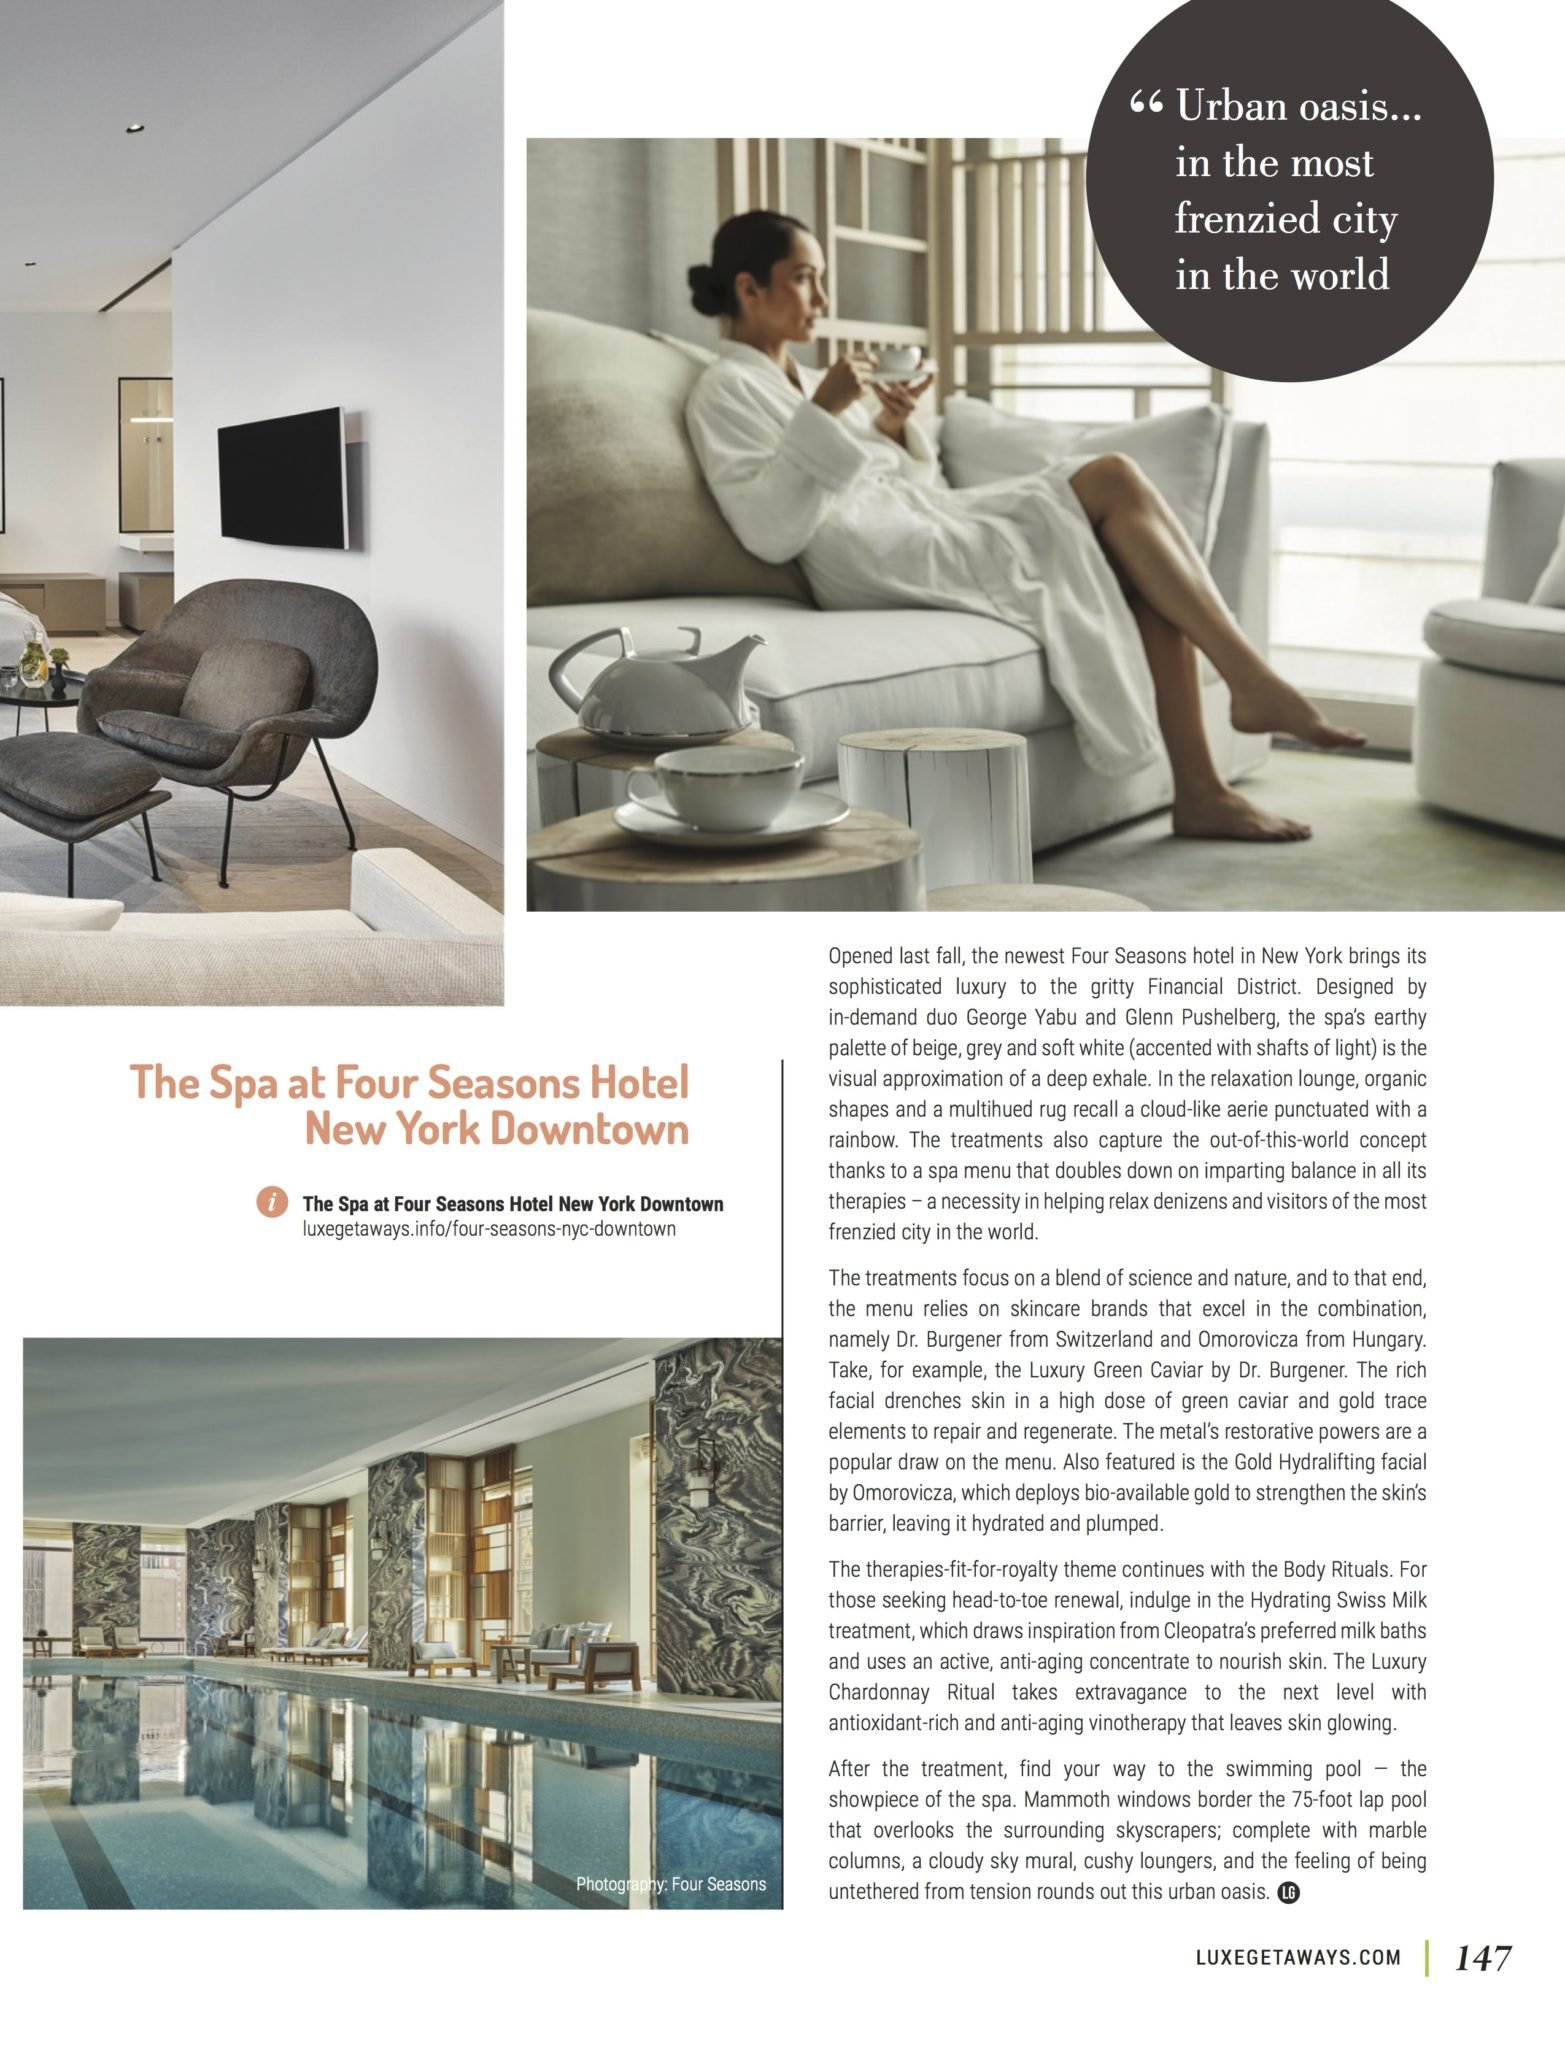 LuxeGetaways - Luxury Travel - Luxury Travel Magazine - Luxe Getaways - Luxury Lifestyle - Fall/Winter 2017 Magazine Issue - Digital Magazine - Travel Magazine - Luxury Spa - Spa and Wellness